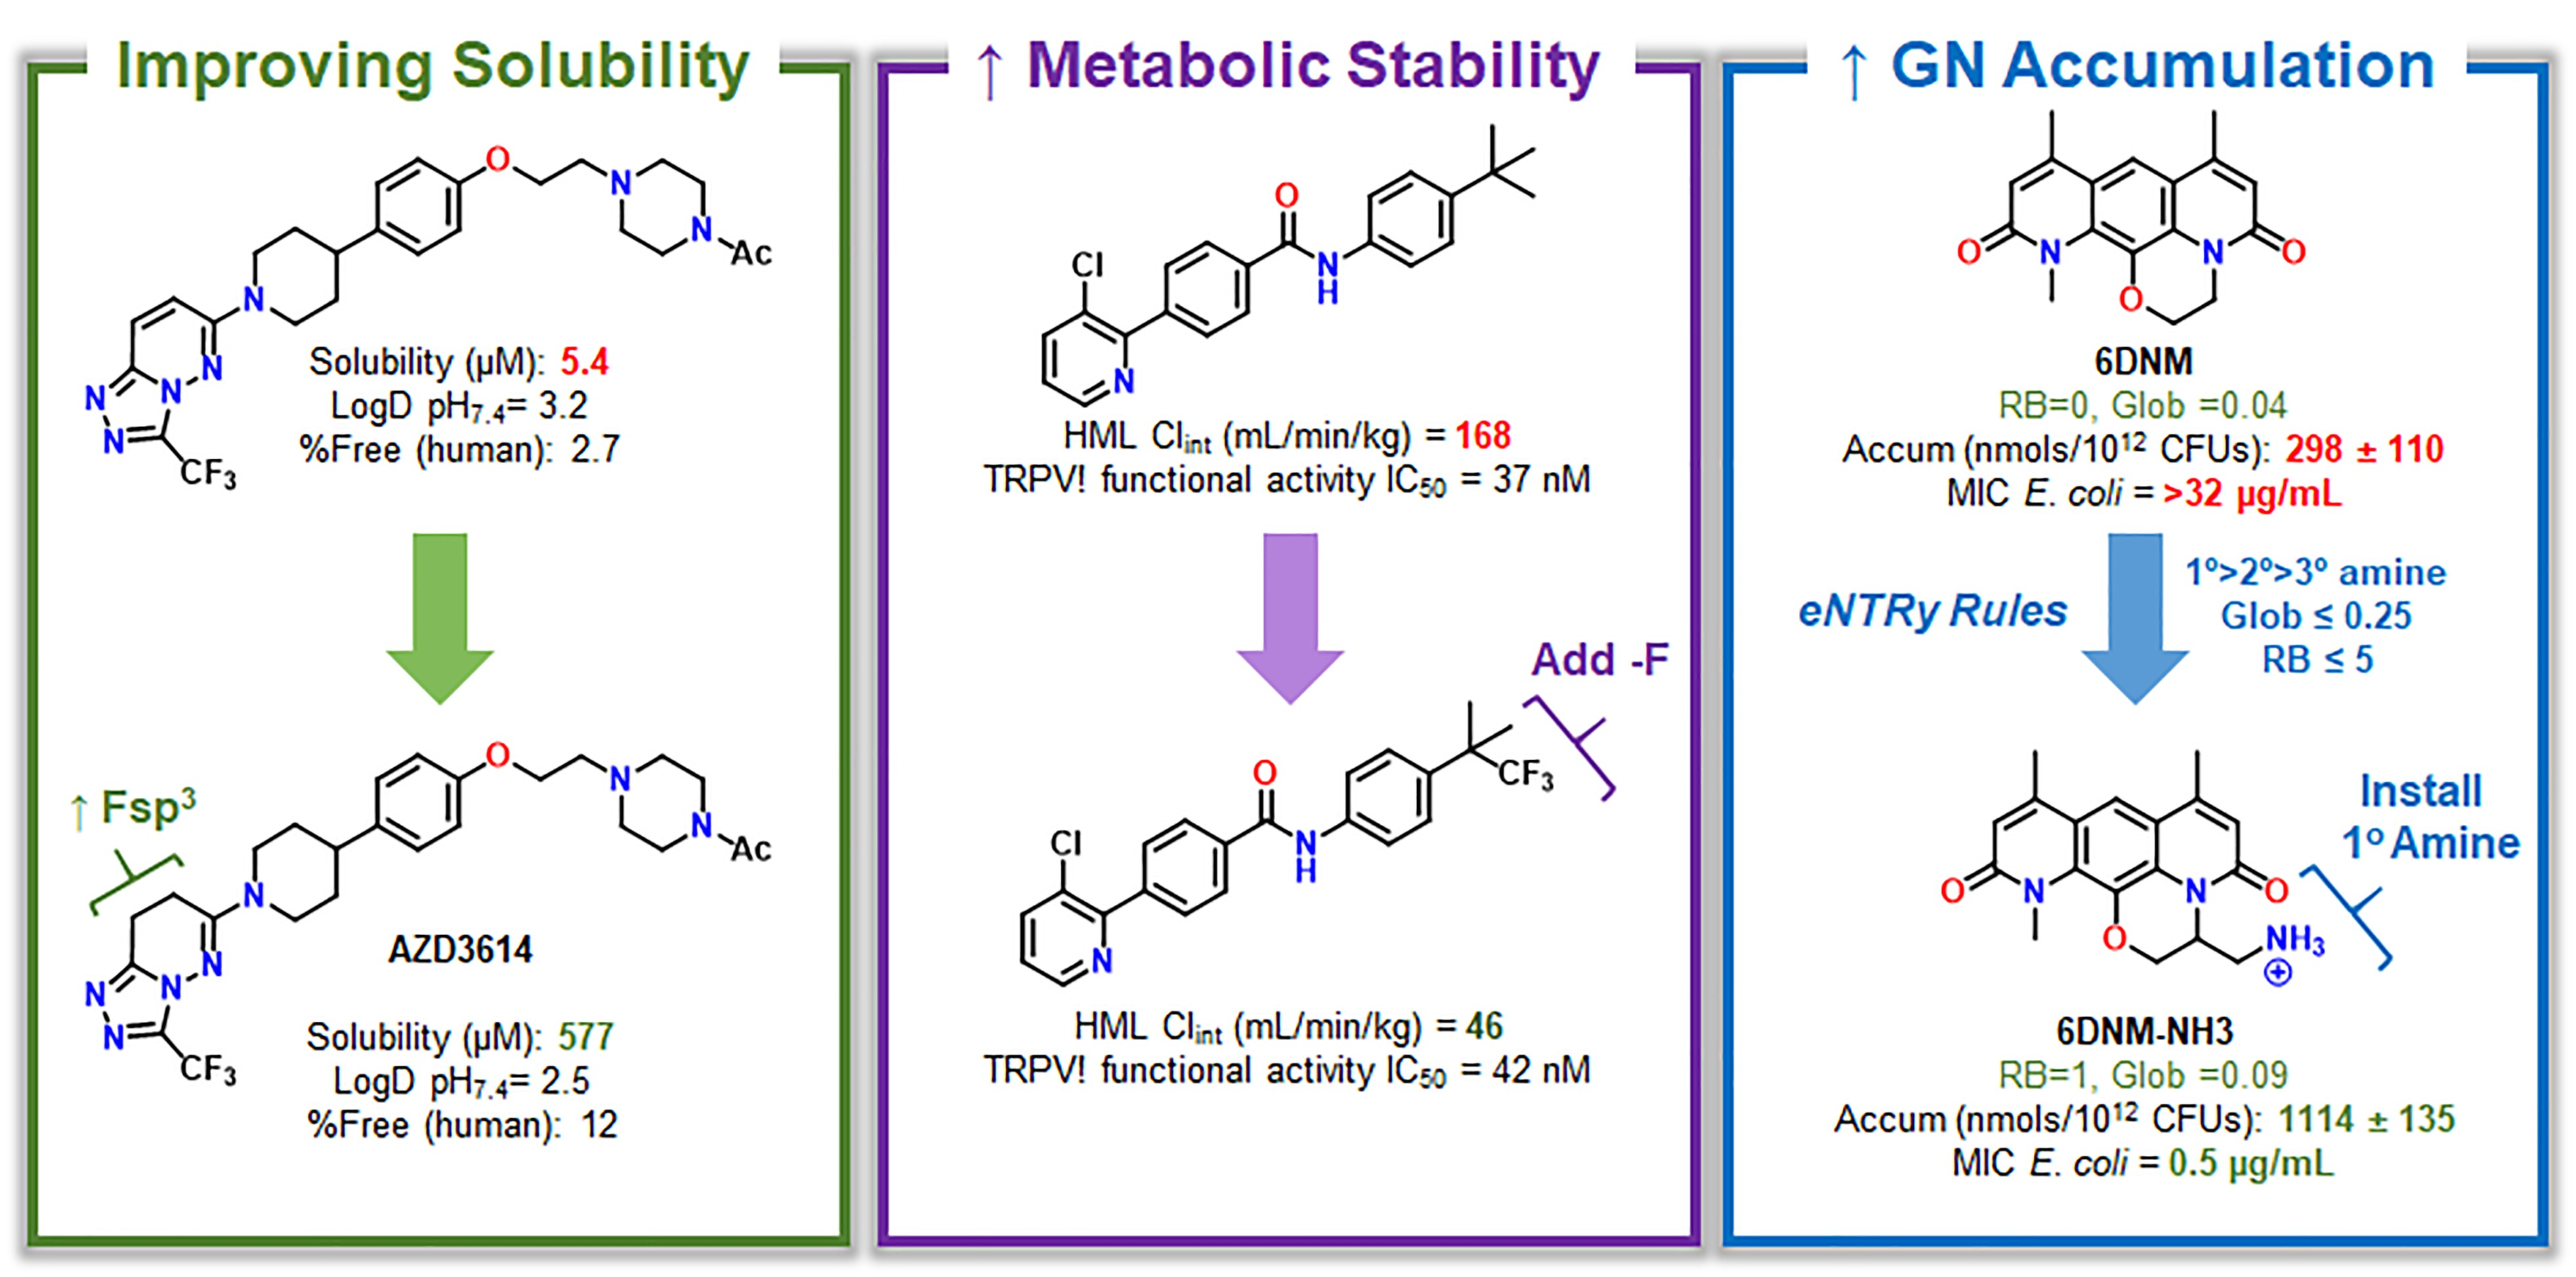 Fig. 1: Physicochemical Modulation Strategies in Drug Discovery